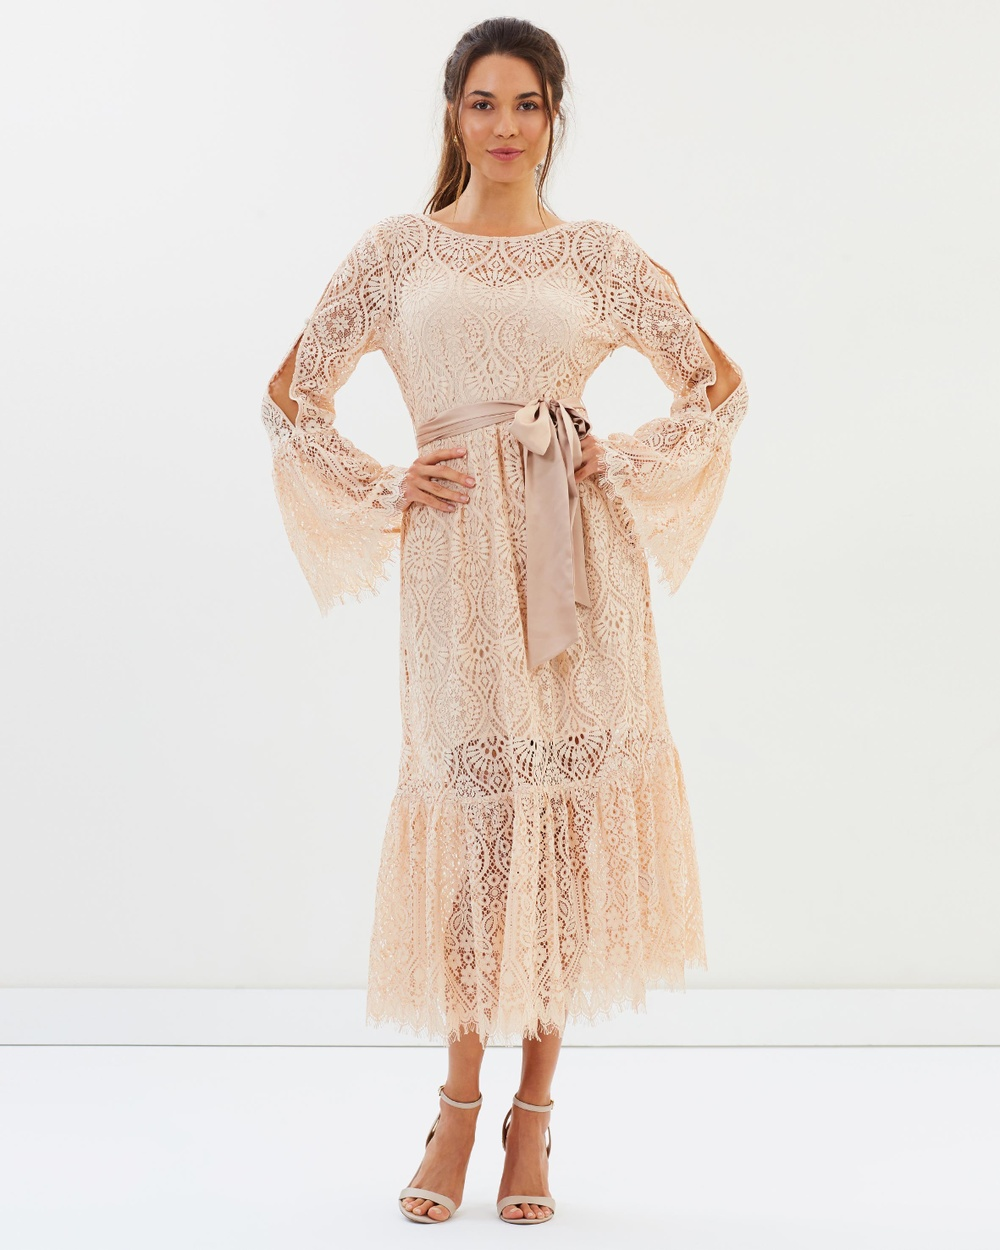 Perseverance Peacock Doily Lace Low Back Midi Dress Bridesmaid Dresses Flesh Pink Peacock Doily Lace Low Back Midi Dress